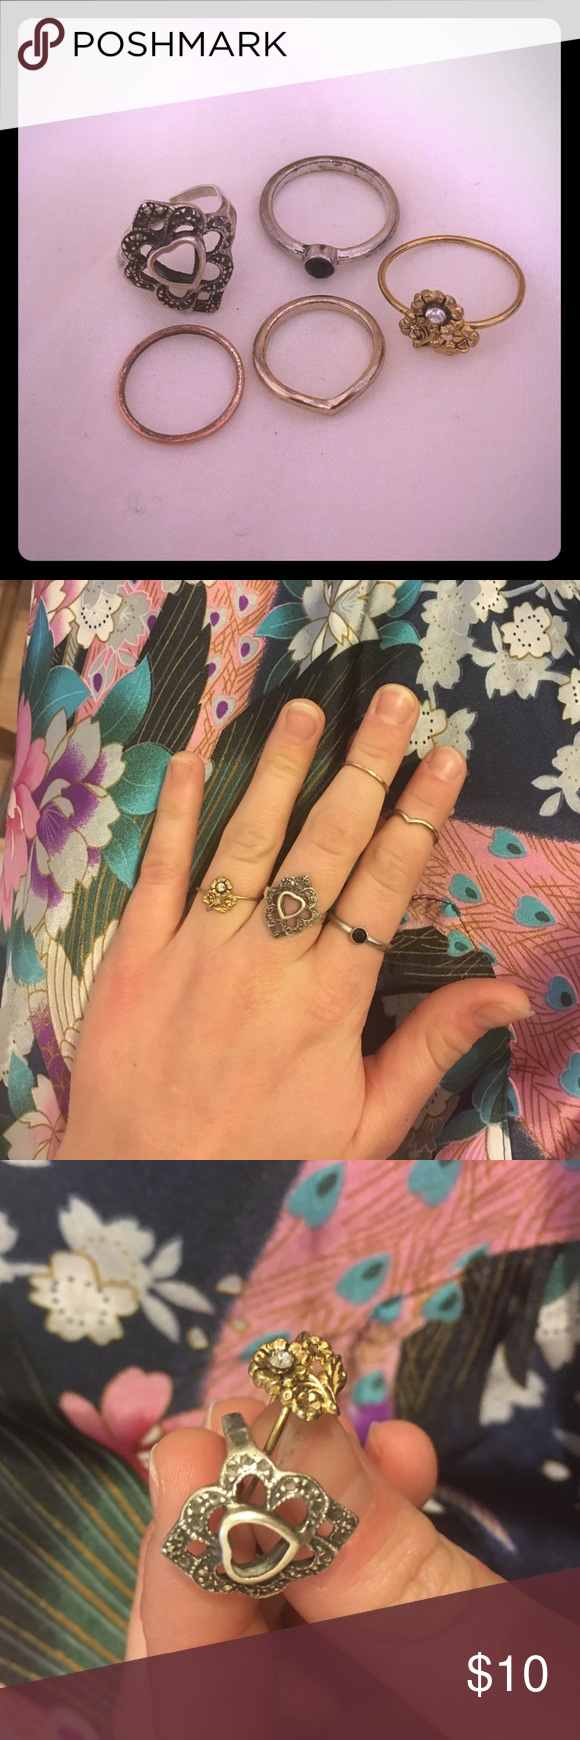 5 ring and midi-ring bundle! Includes 2 midi rings and 3 size 7 rings. All really cute but not amazing quality, hence the bundle! 💍💍💍💍💍 Jewelry Rings